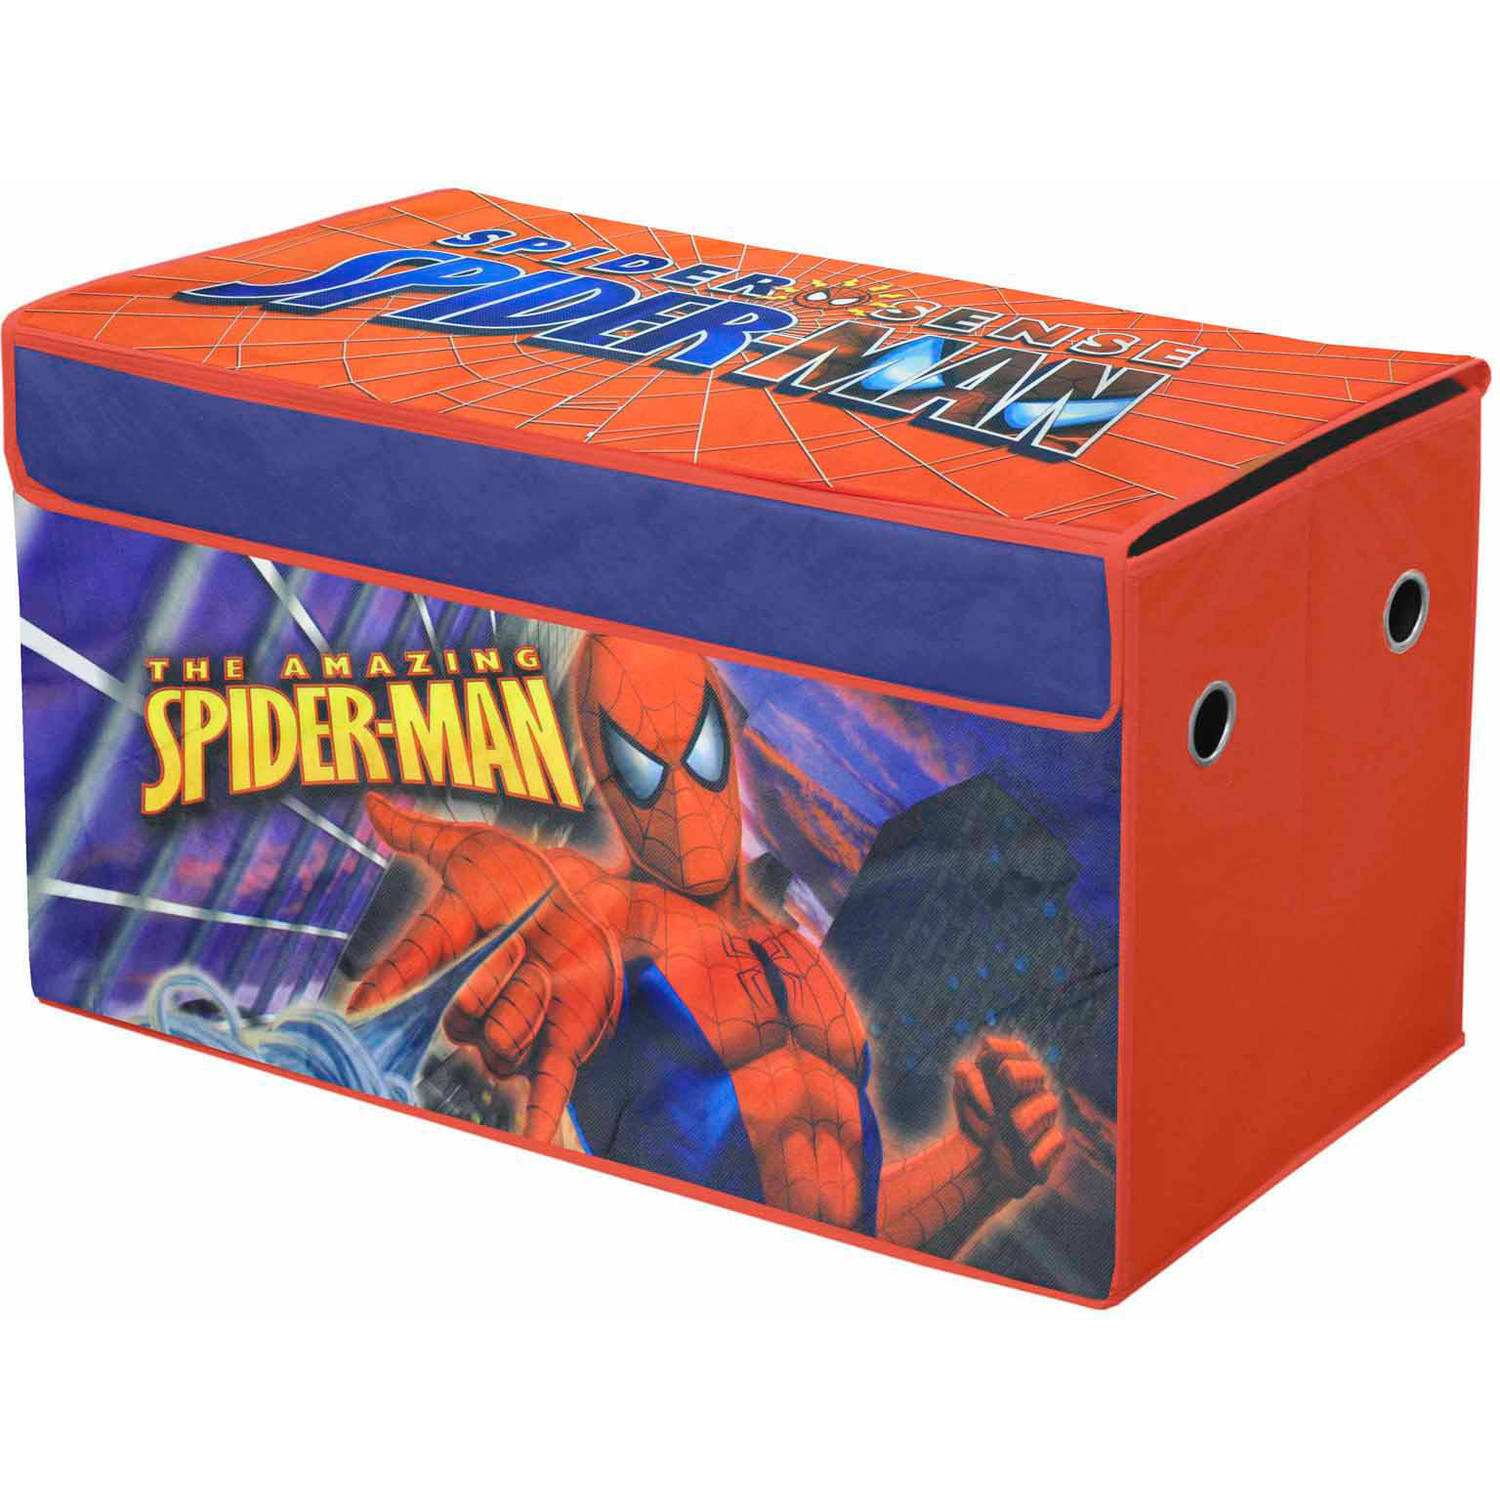 Marvel Spiderman Oversized Soft Collapsible Storage Toy Trunk   Walmart.com